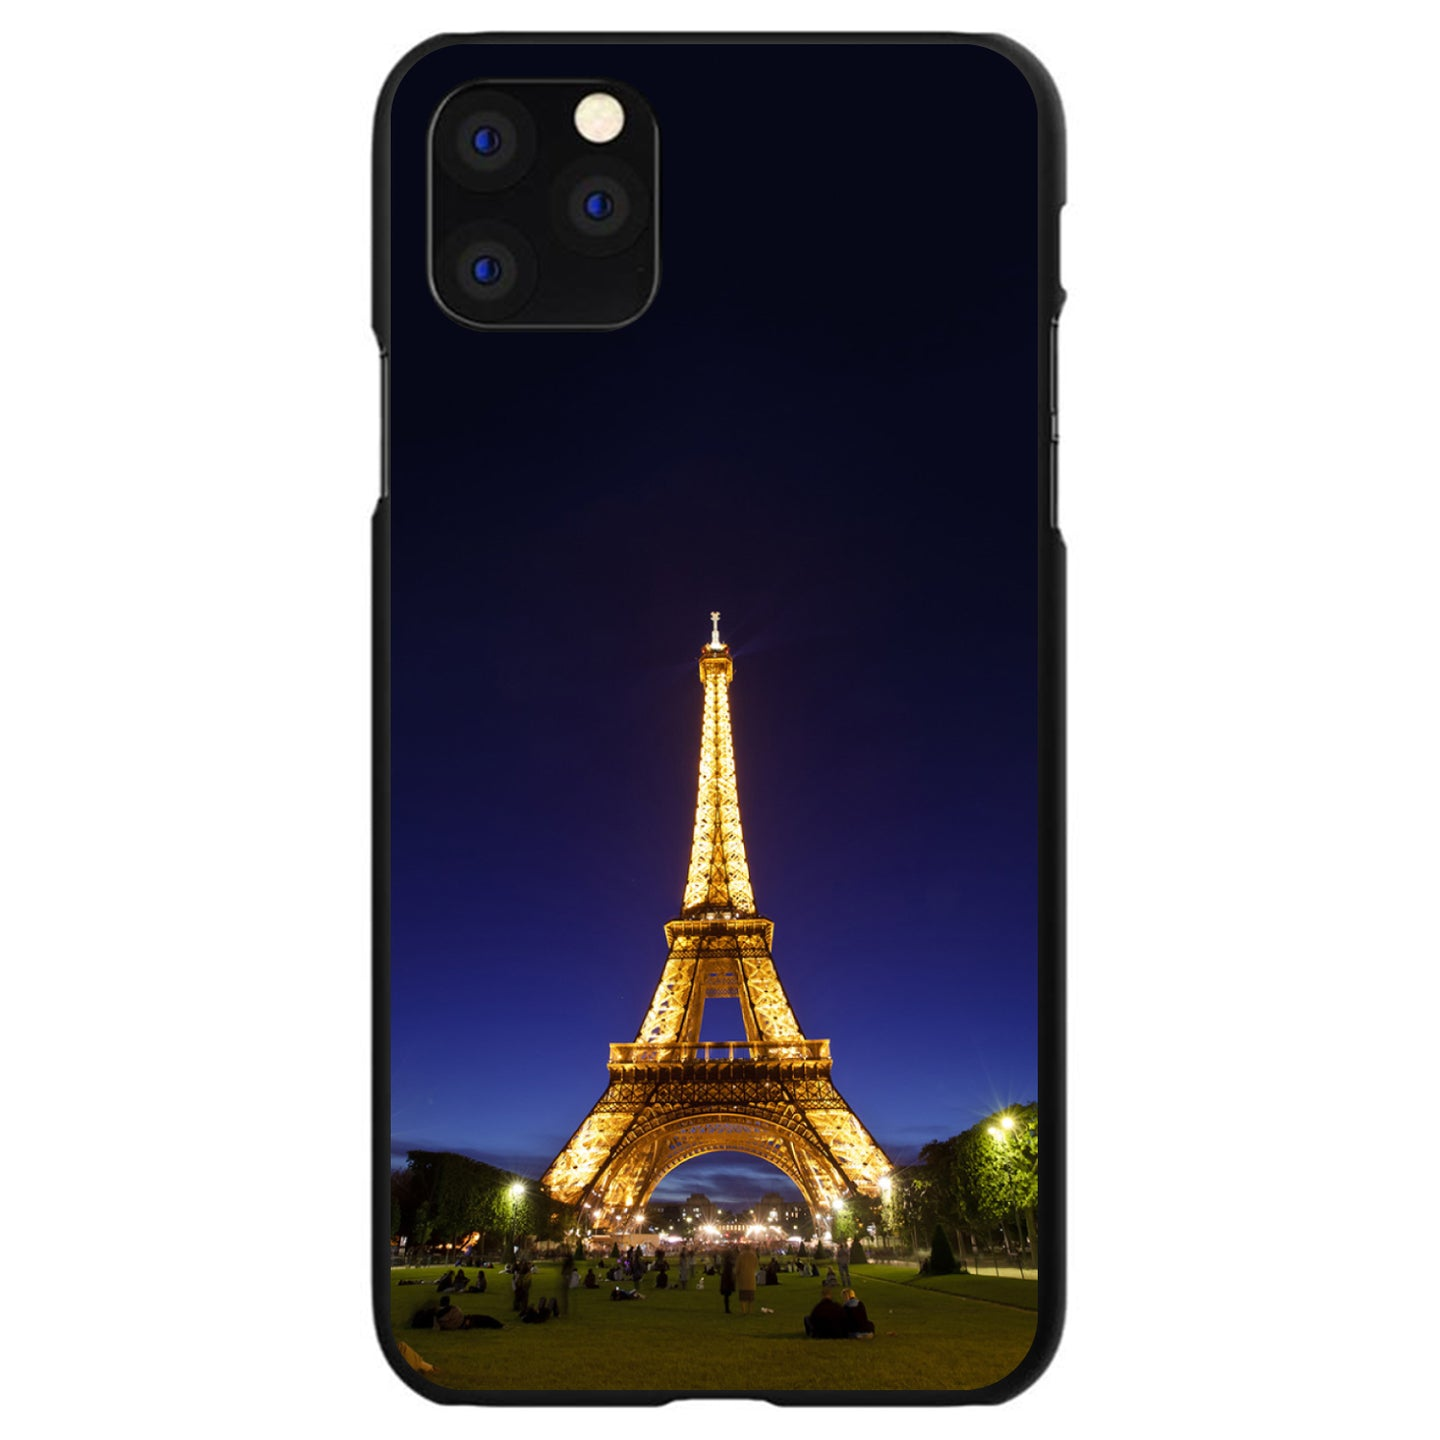 DistinctInk® Hard Plastic Snap-On Case for Apple iPhone - Eiffel Tower Paris Night